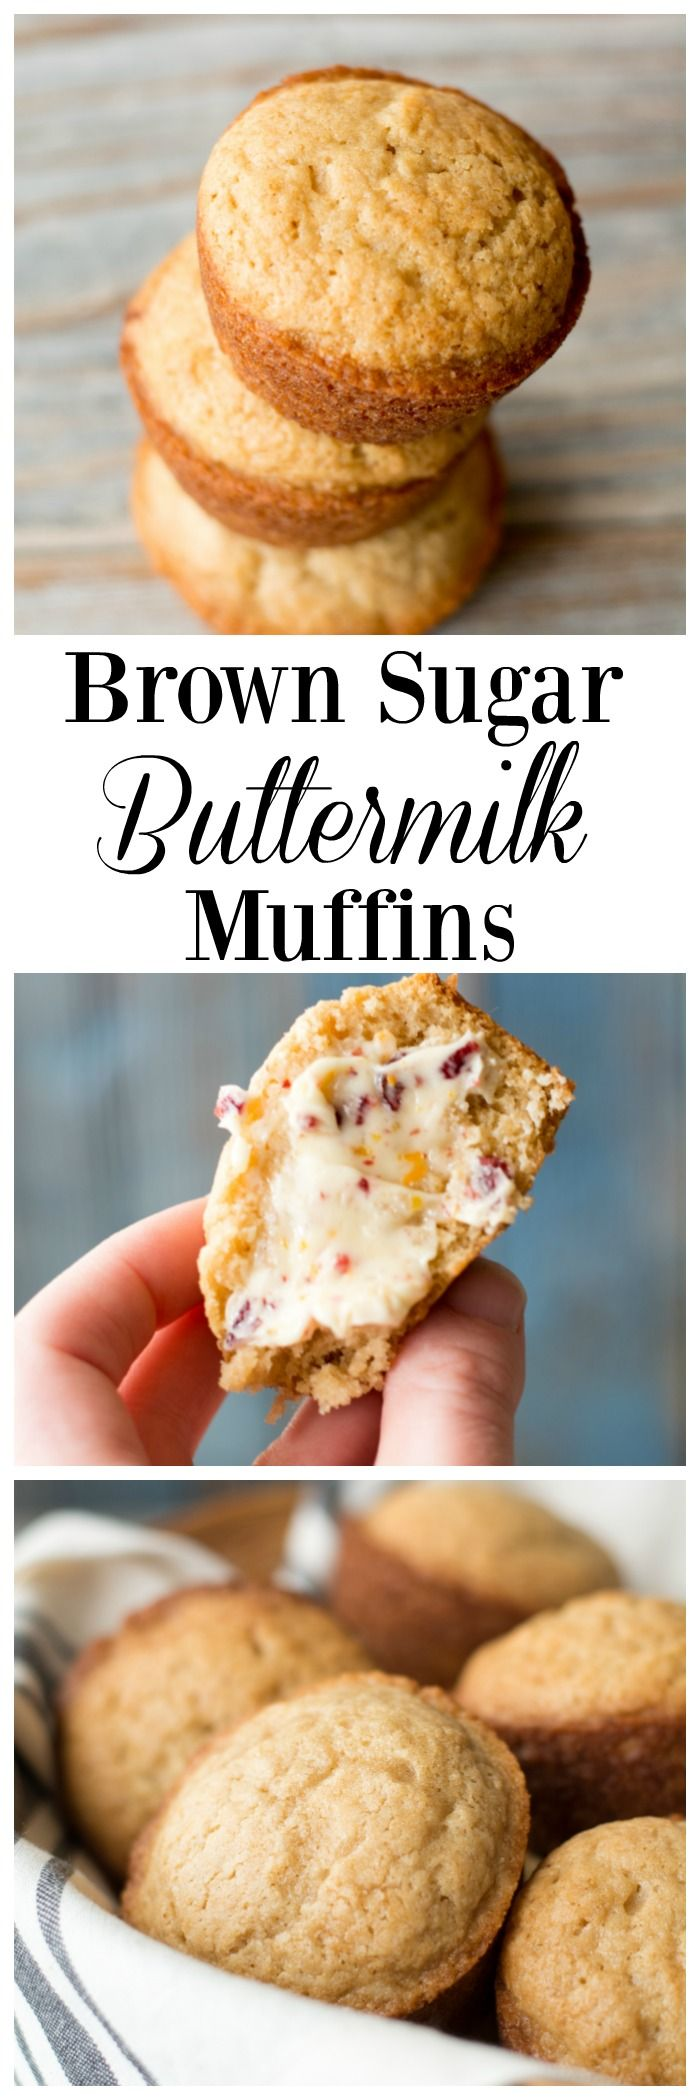 Delicious muffins made with brown sugar and buttermilk for a great texture and flavor. Easy breakfast that only uses one bowl.